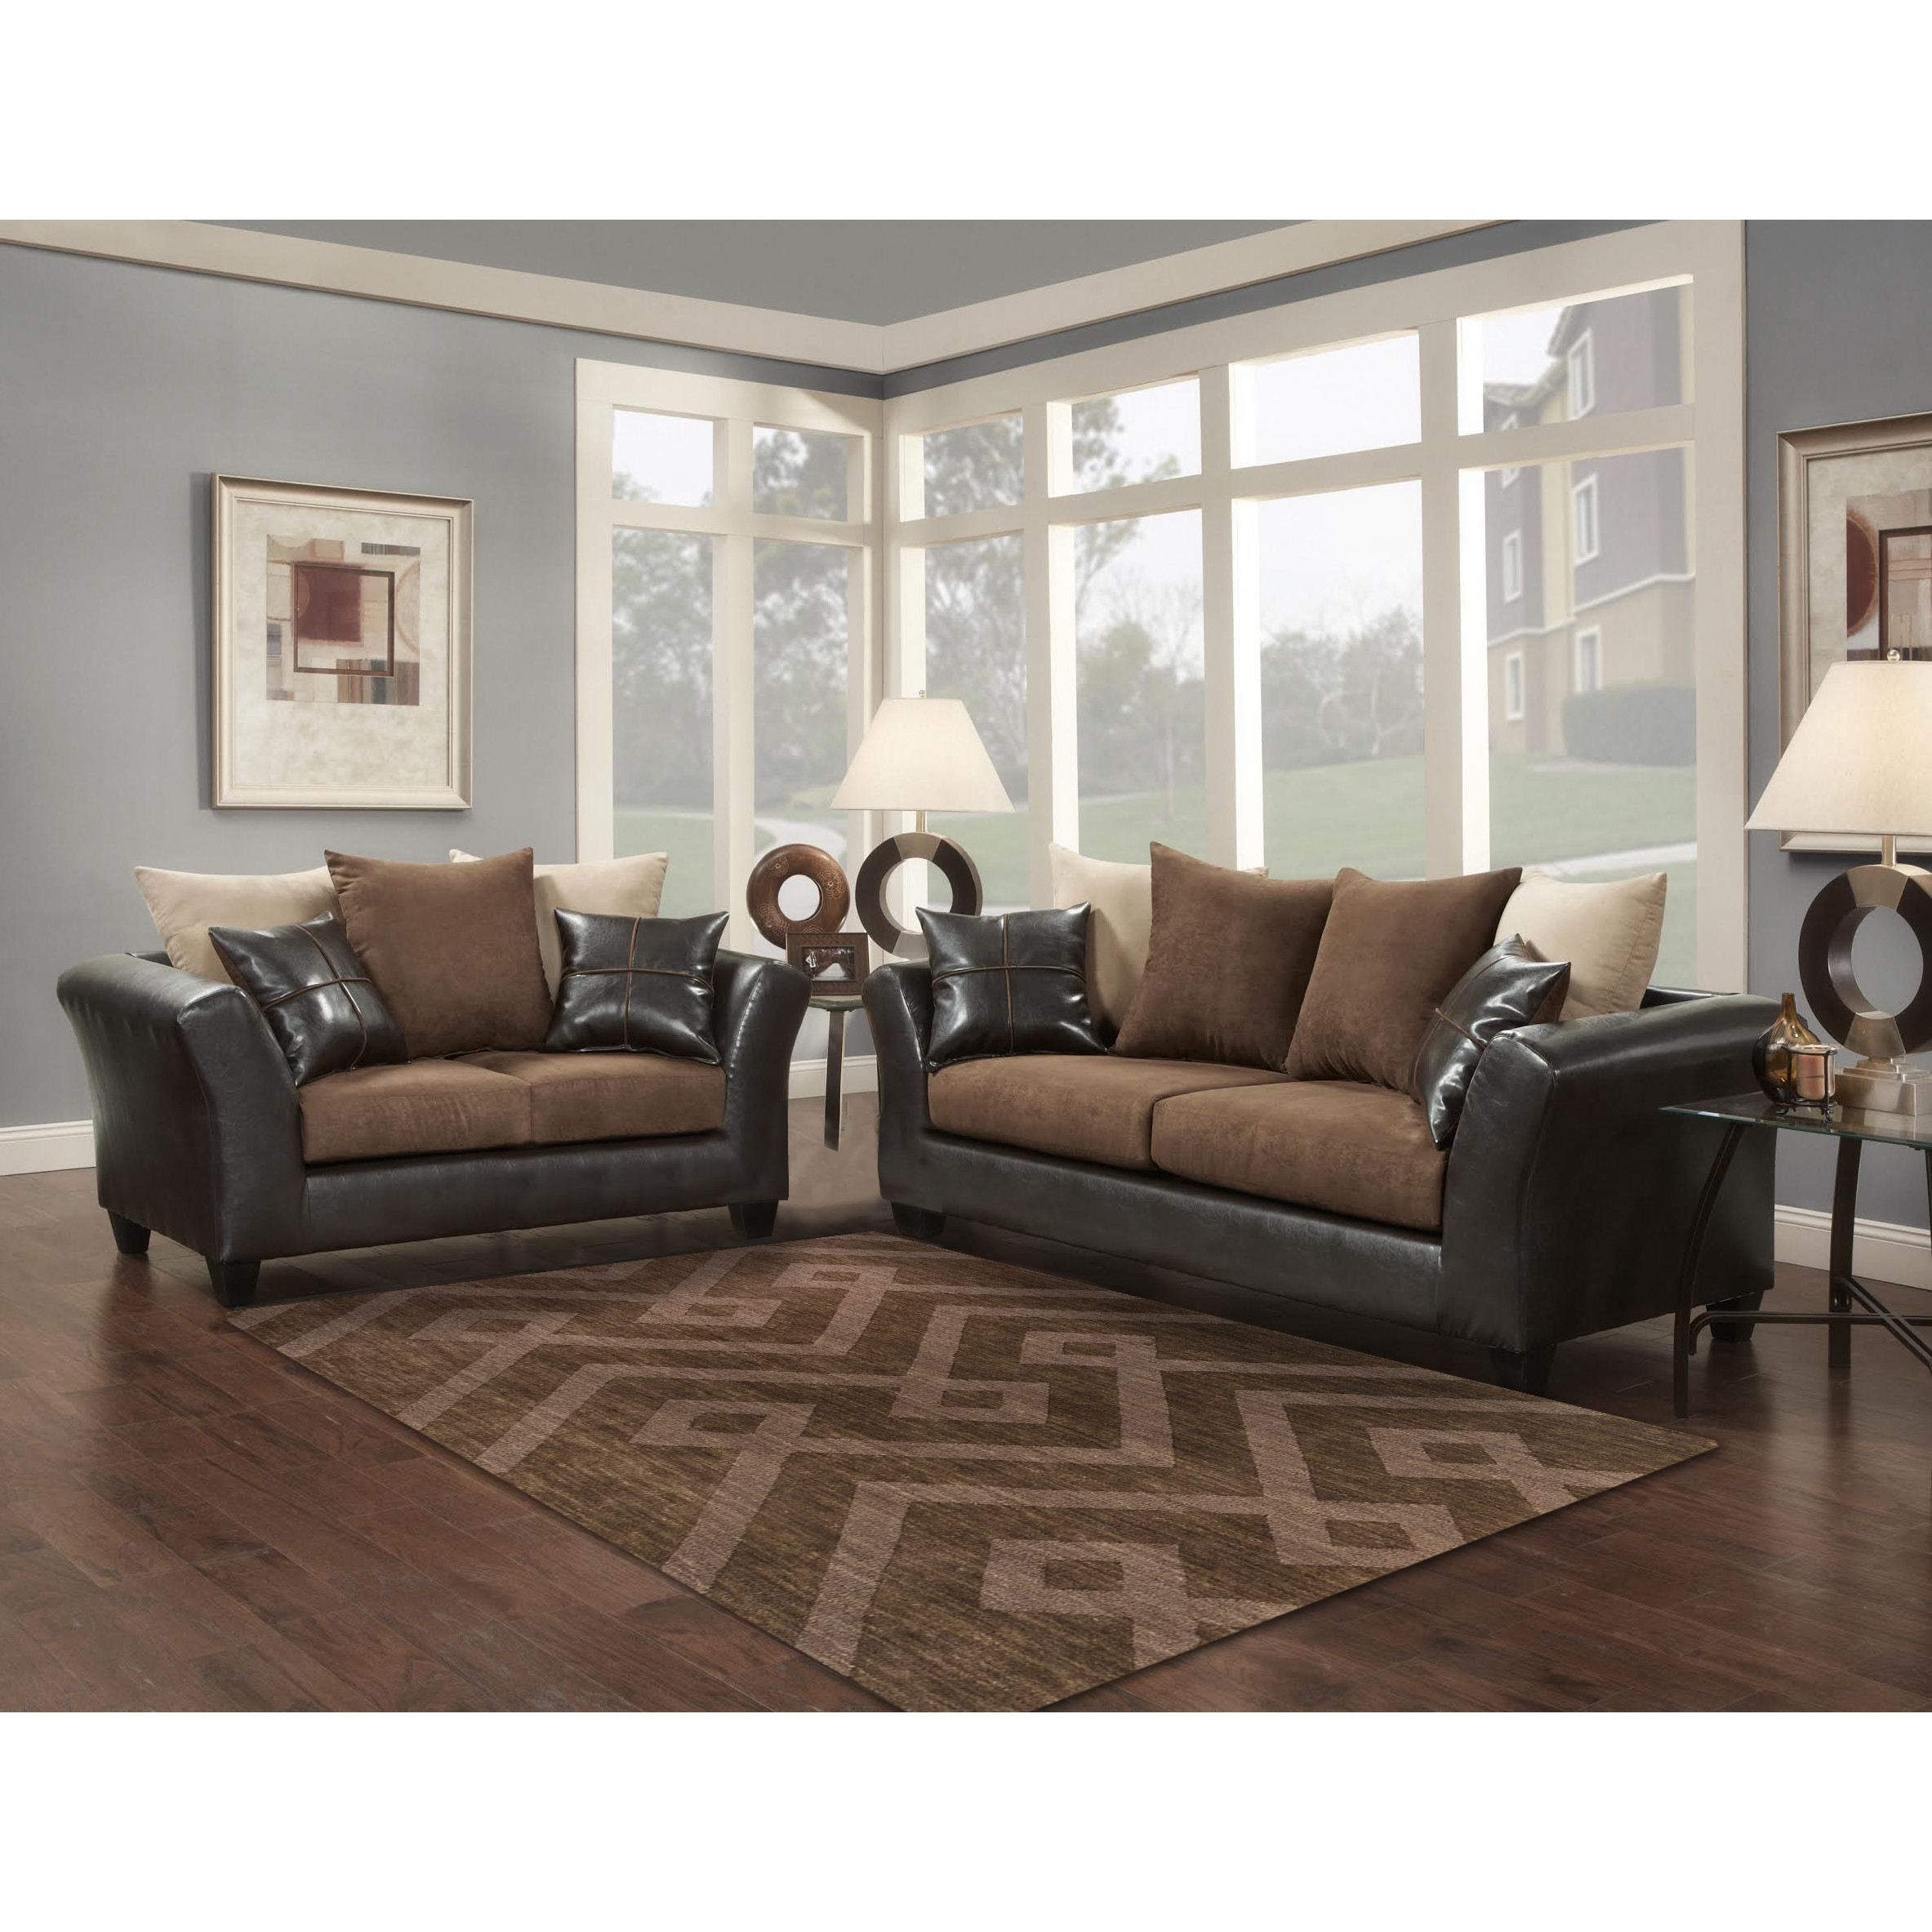 Braxton Sectional Sofa Reviews Sofa Menzilperde Intended For Braxton Sectional Sofa (Image 12 of 15)